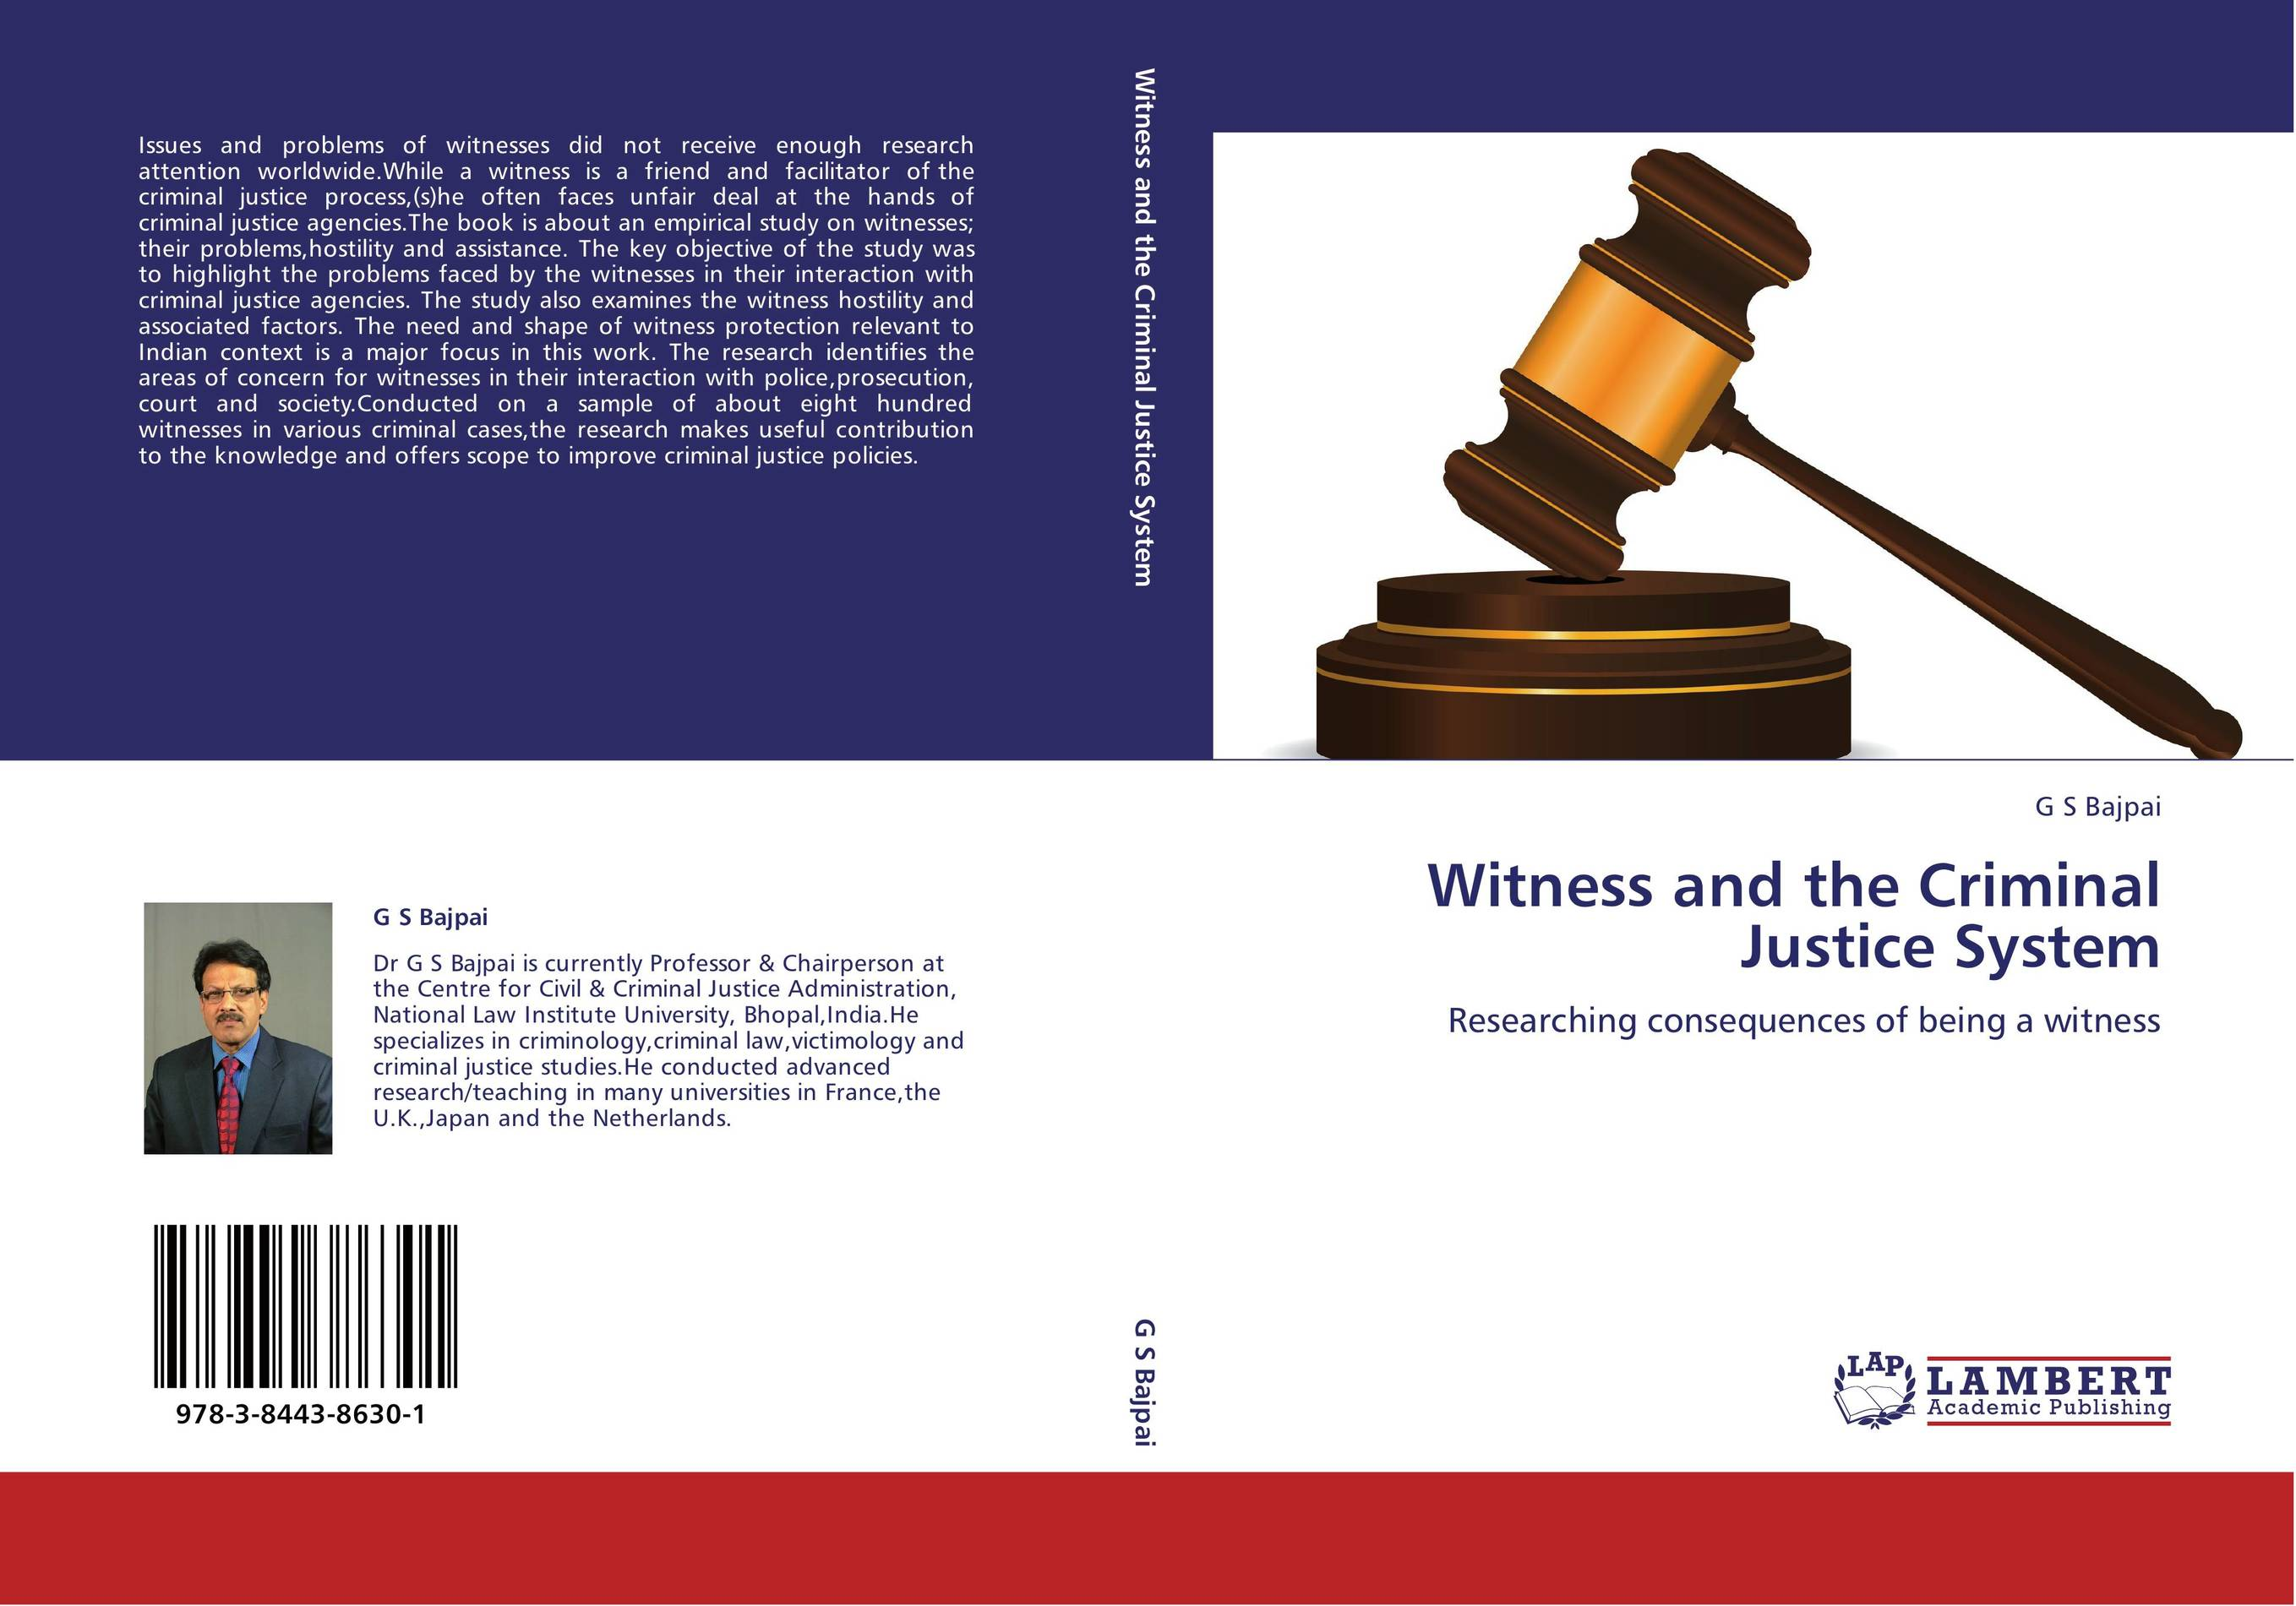 criminal justice system of india and In this article, the judiciary system of india is discussed with the emphasis on the hierarchy of indian courts and the justice system in india.